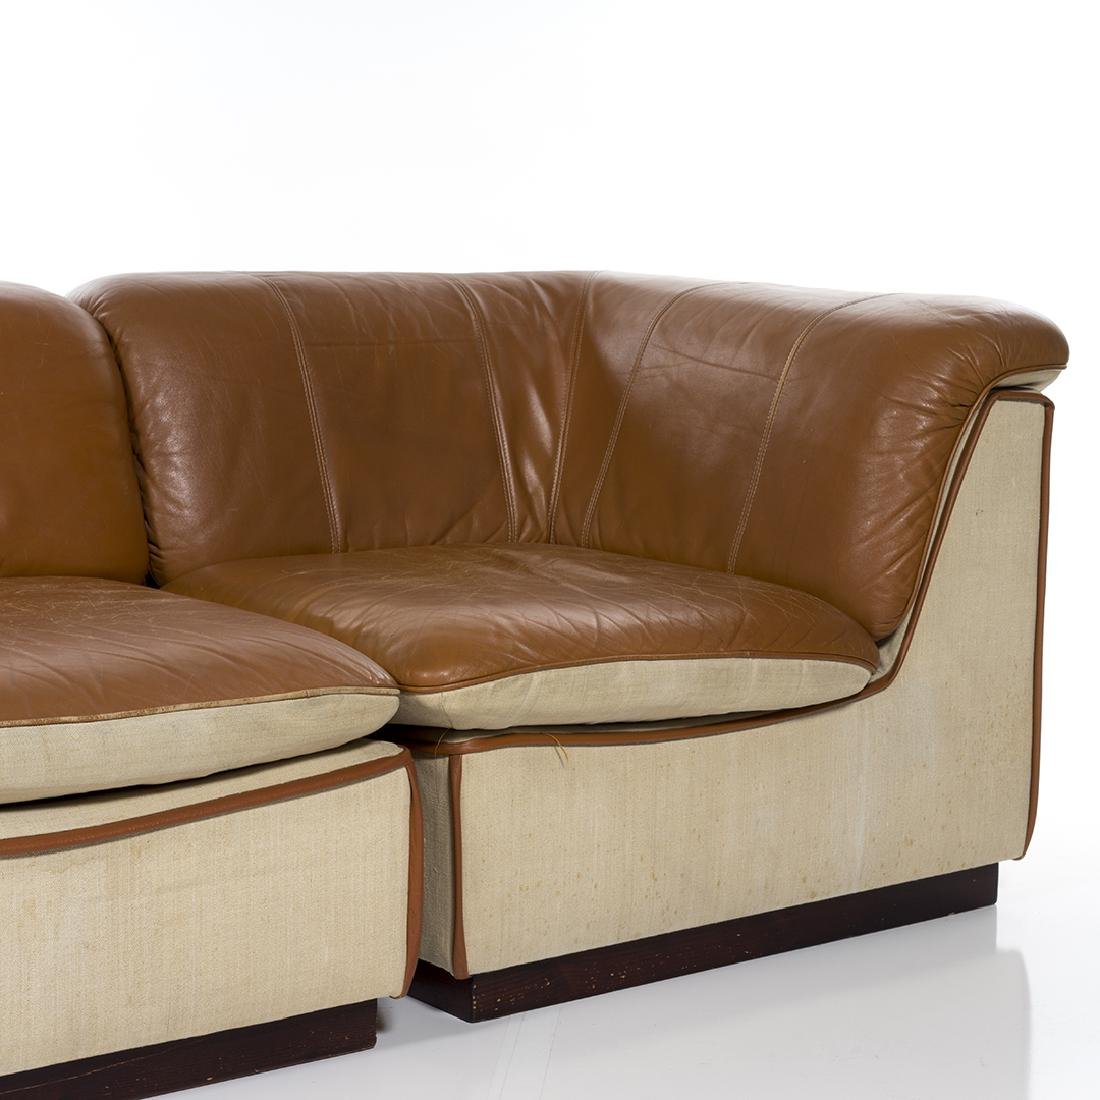 Finnish Modular Sofa - 5